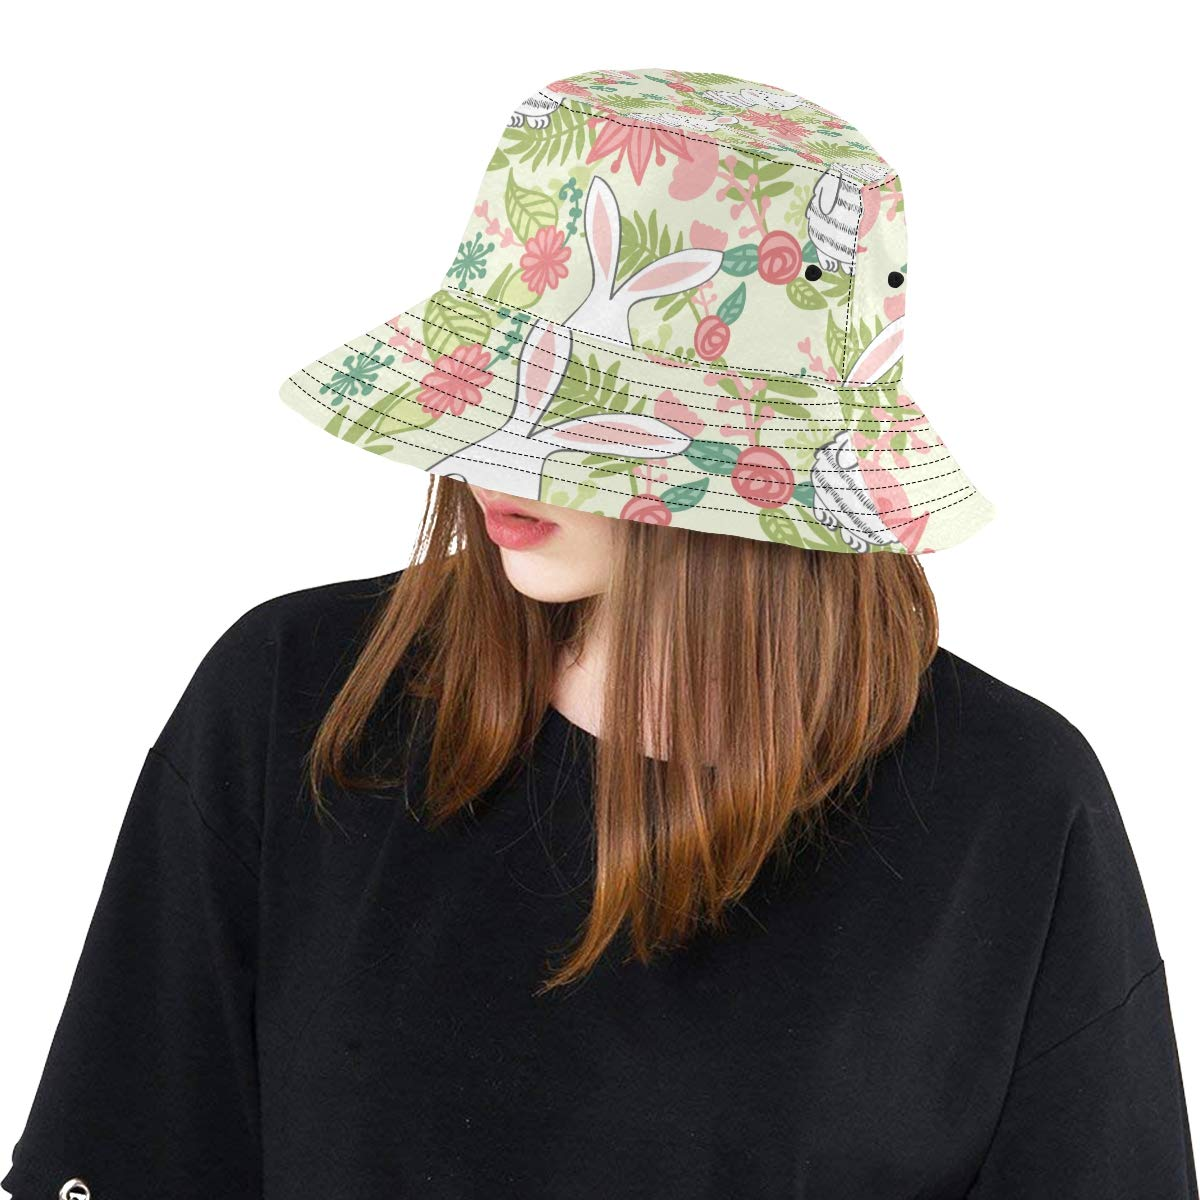 Bunny Cute Child Rabbit with Flowers New Summer Unisex Cotton Fashion Fishing Sun Bucket Hats for Kid Teens Women and Men with Customize Top Packable Fisherman Cap for Outdoor Travel